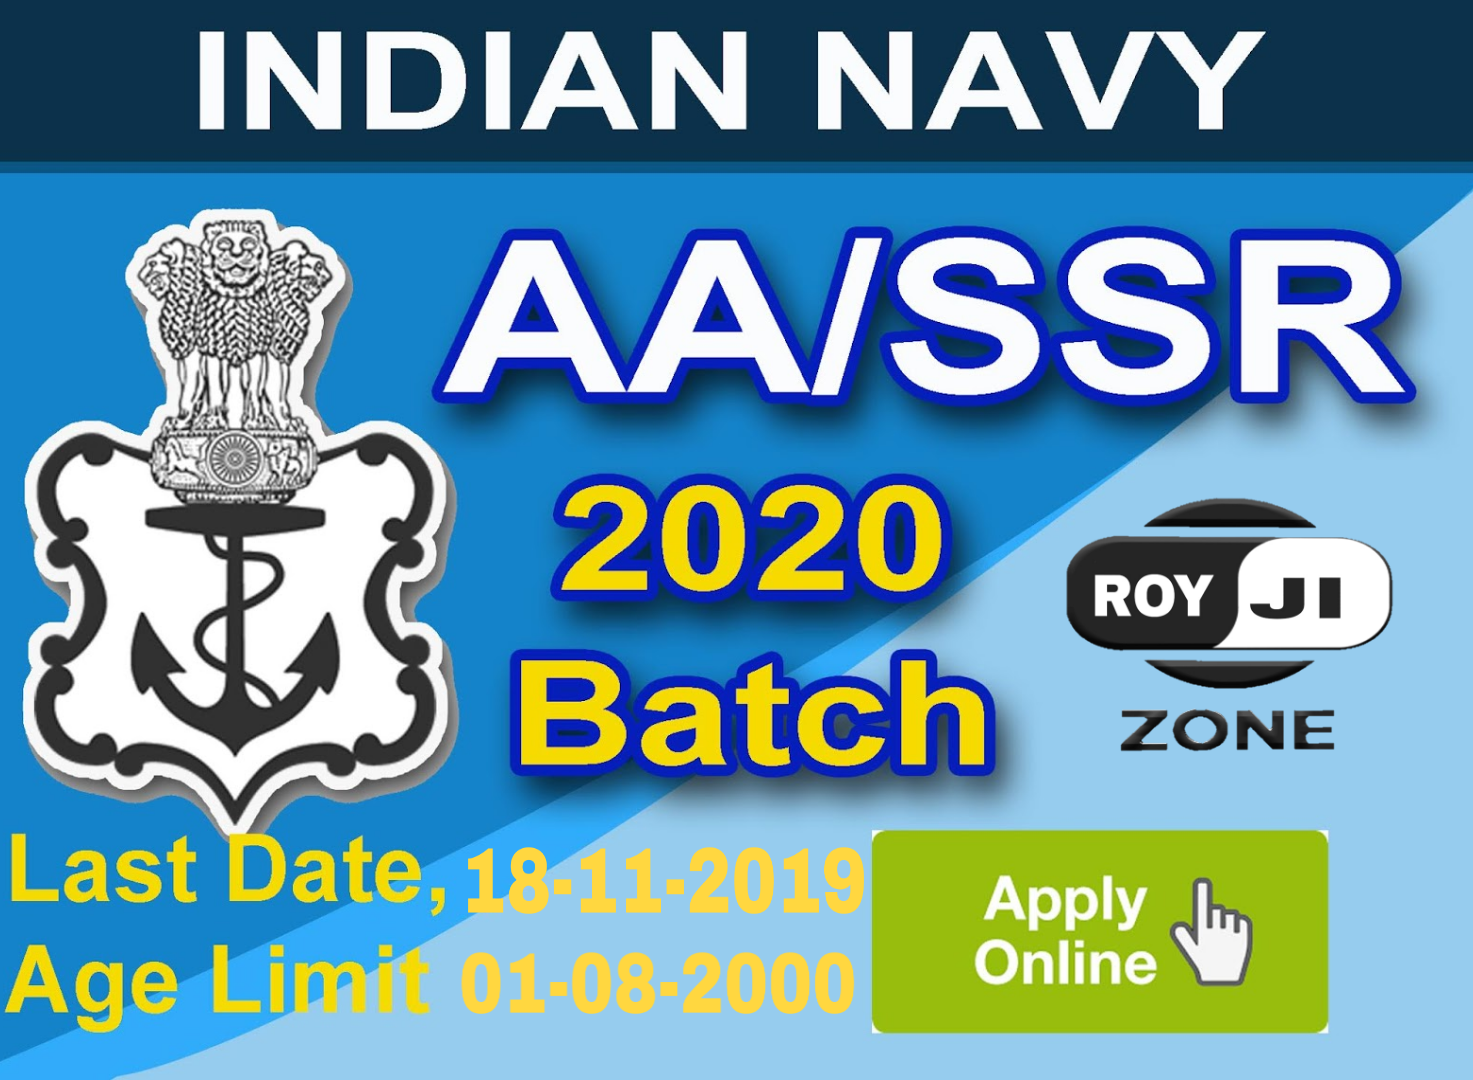 c02bb750fdfaa2b486c408cc2f61d8ae - Application Form For Navy Recruitment